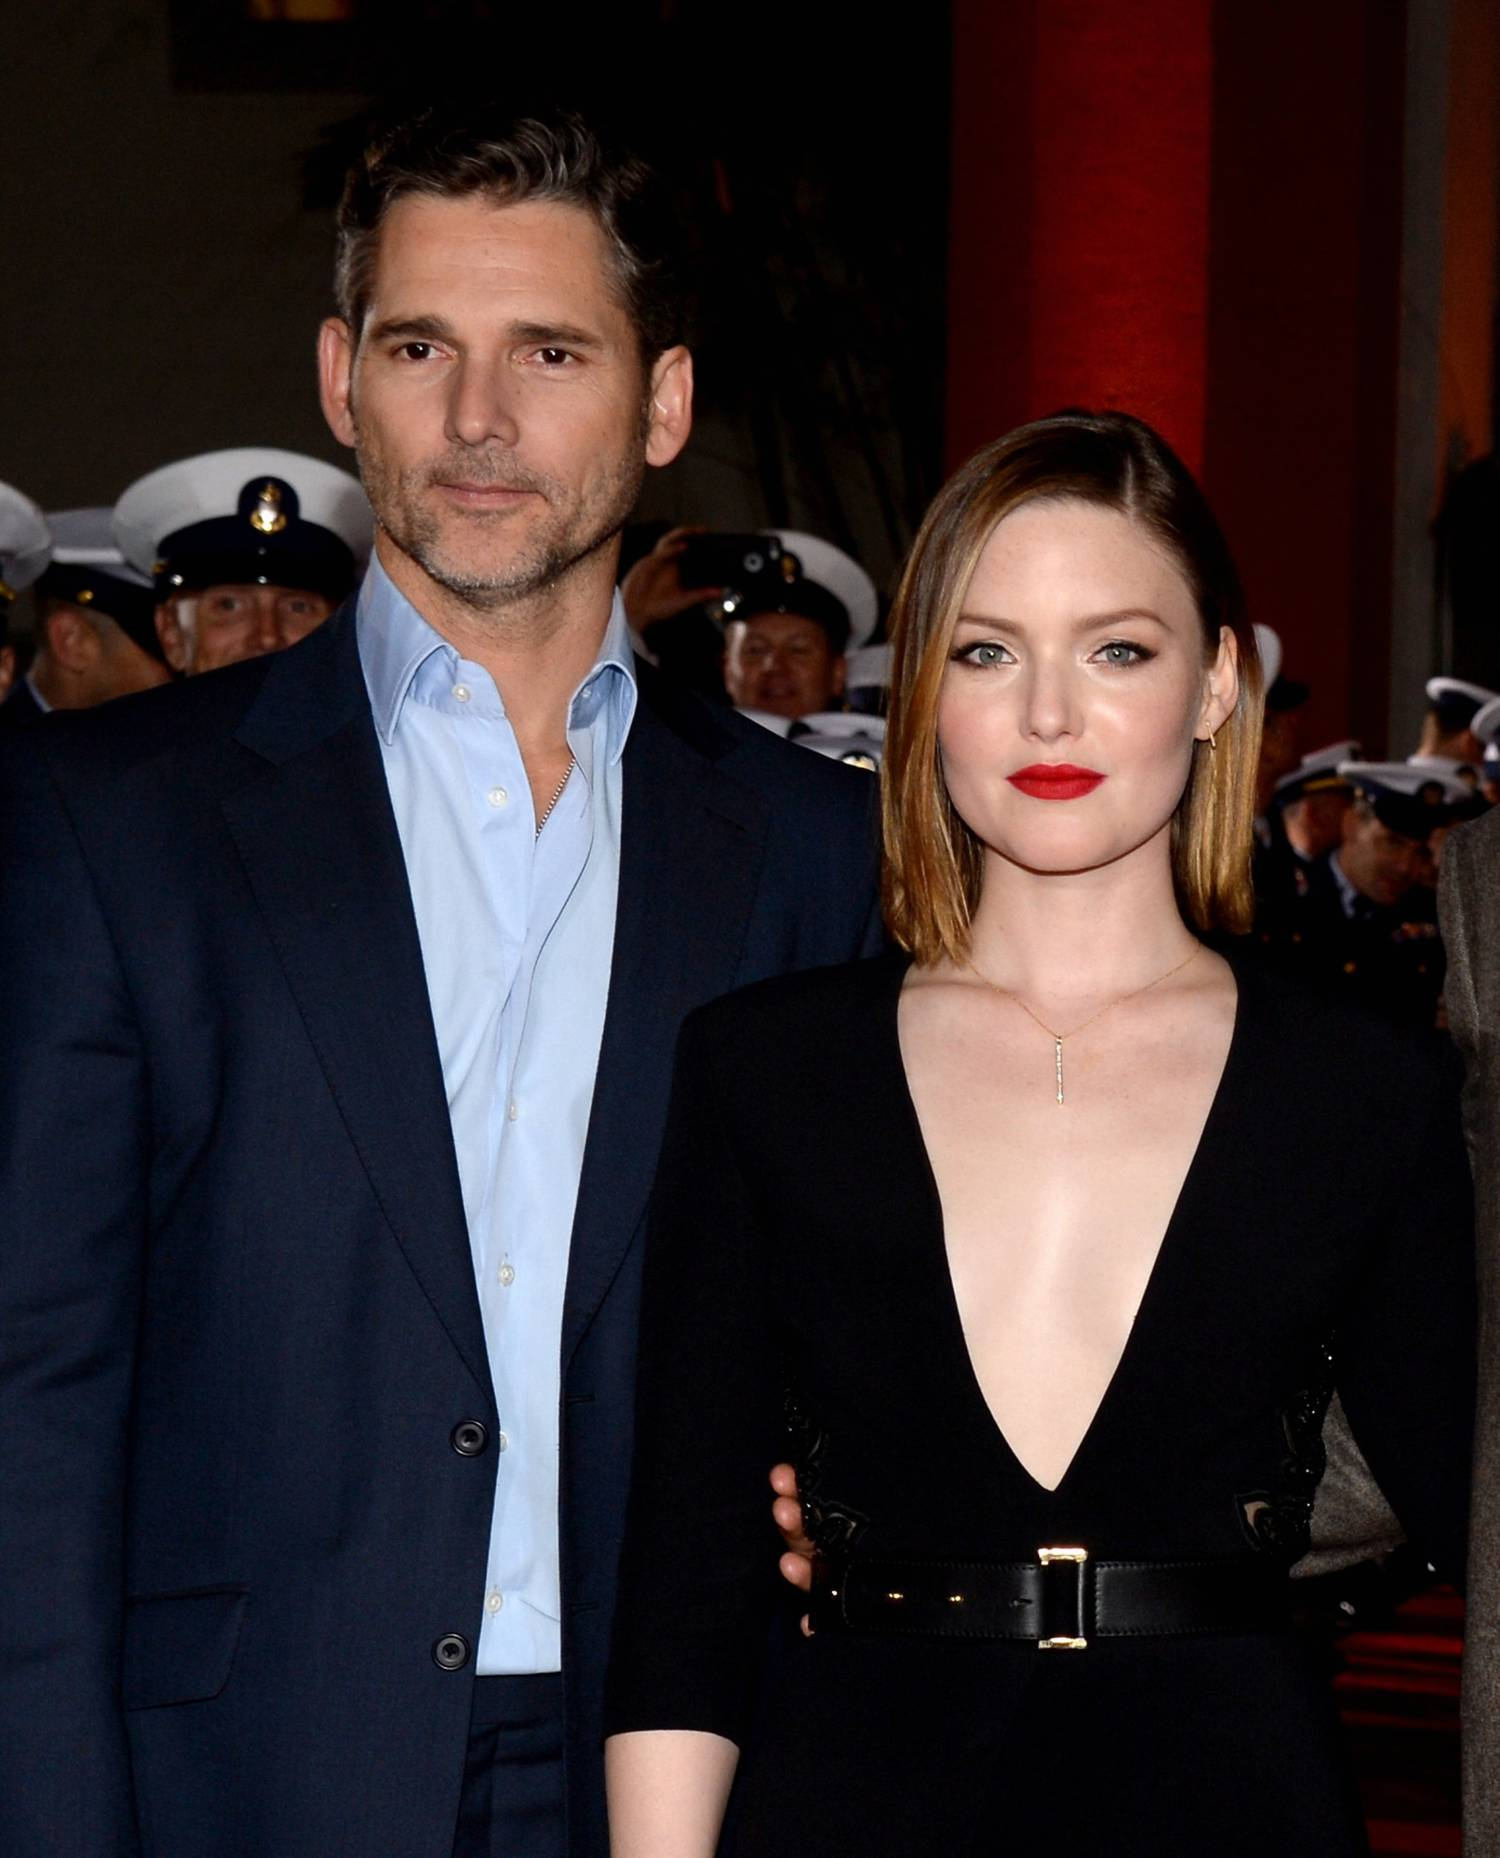 Holliday Grainger Poses with Eric Bana and Chris Pine at The Finest Hours Premiere-4